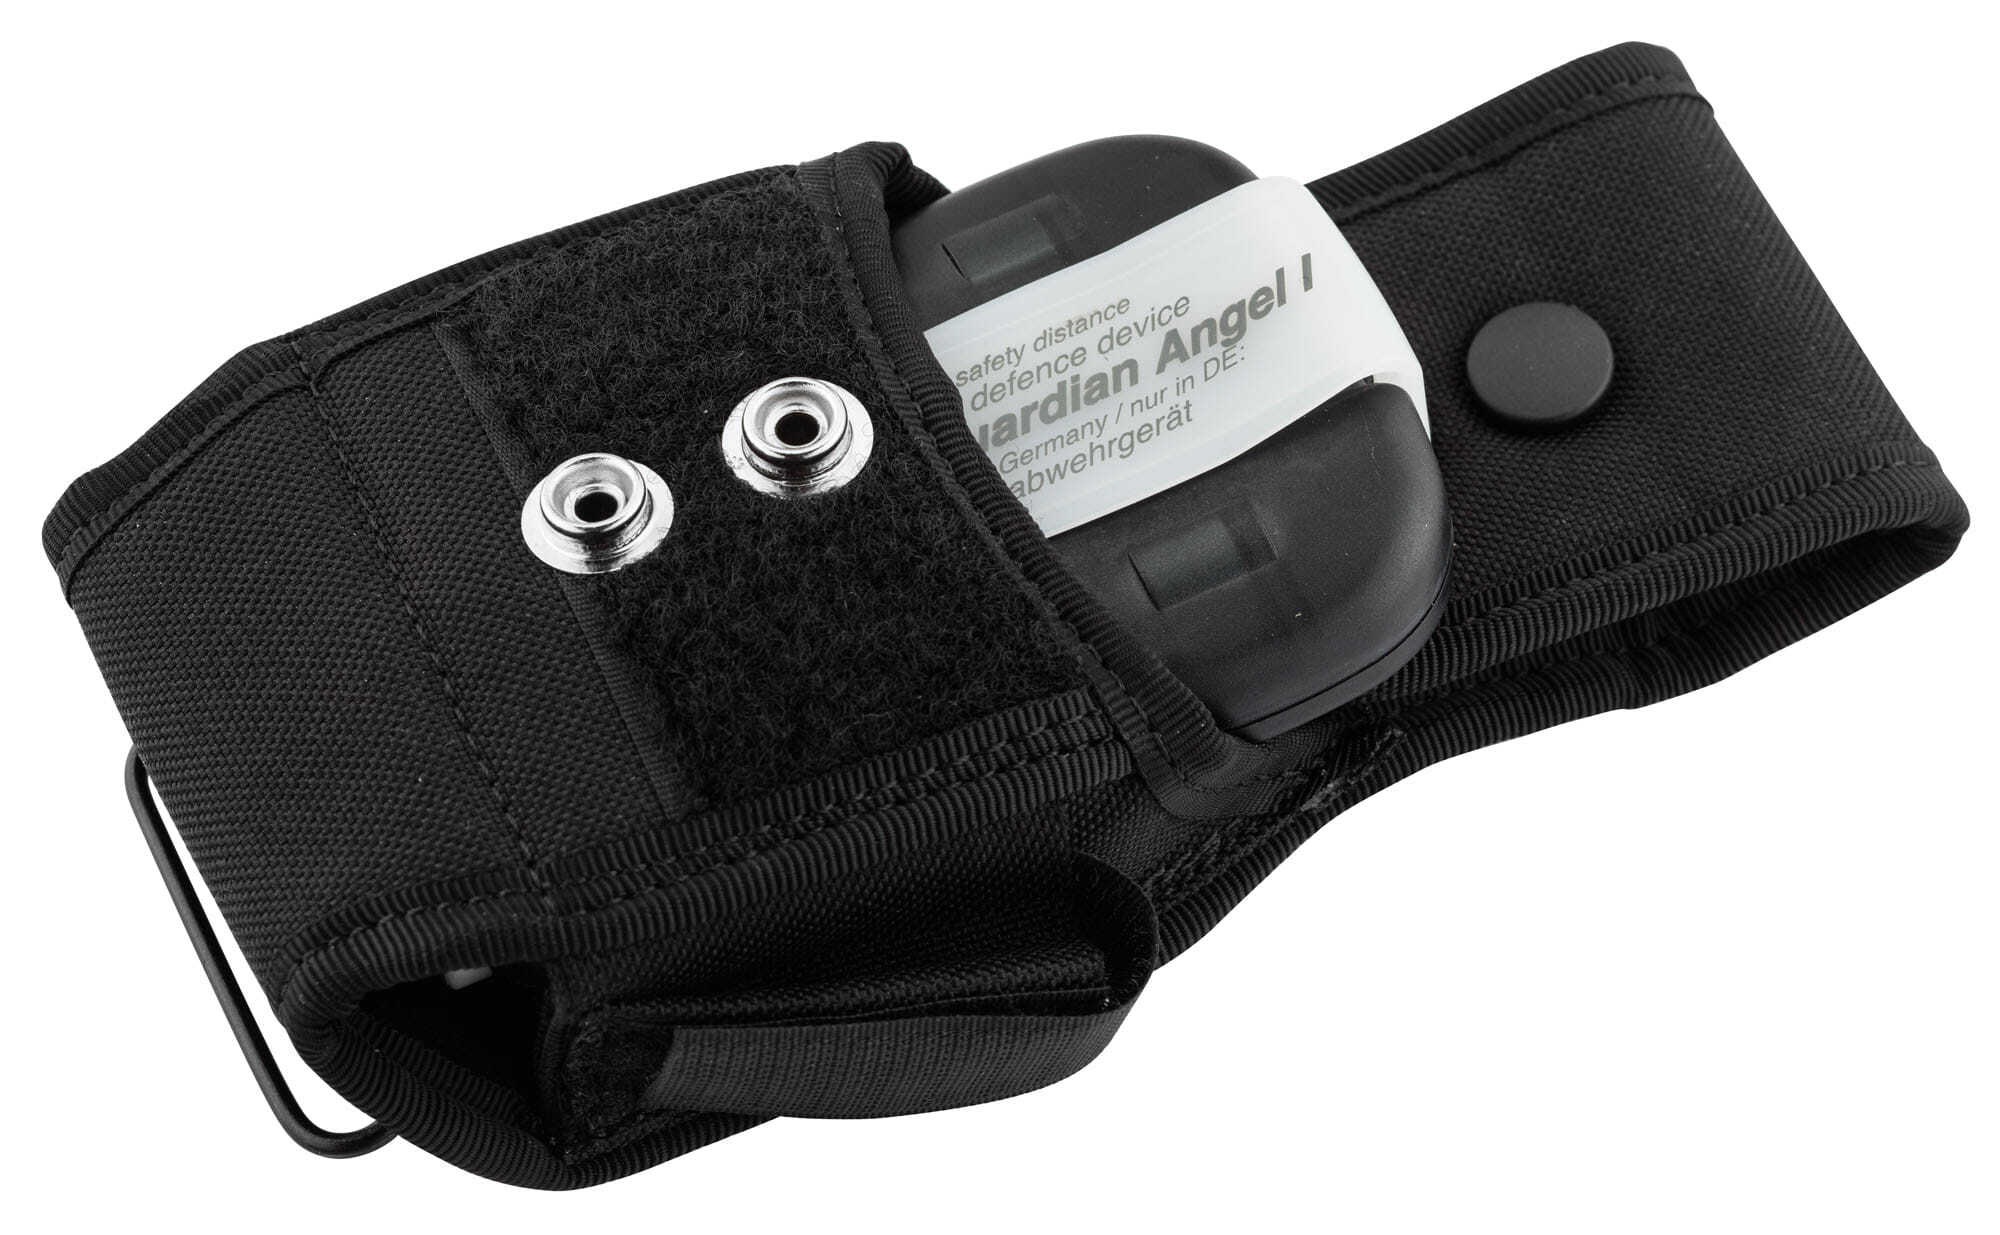 GA500H-4-Holster pour Guardian Angel I - GA500H